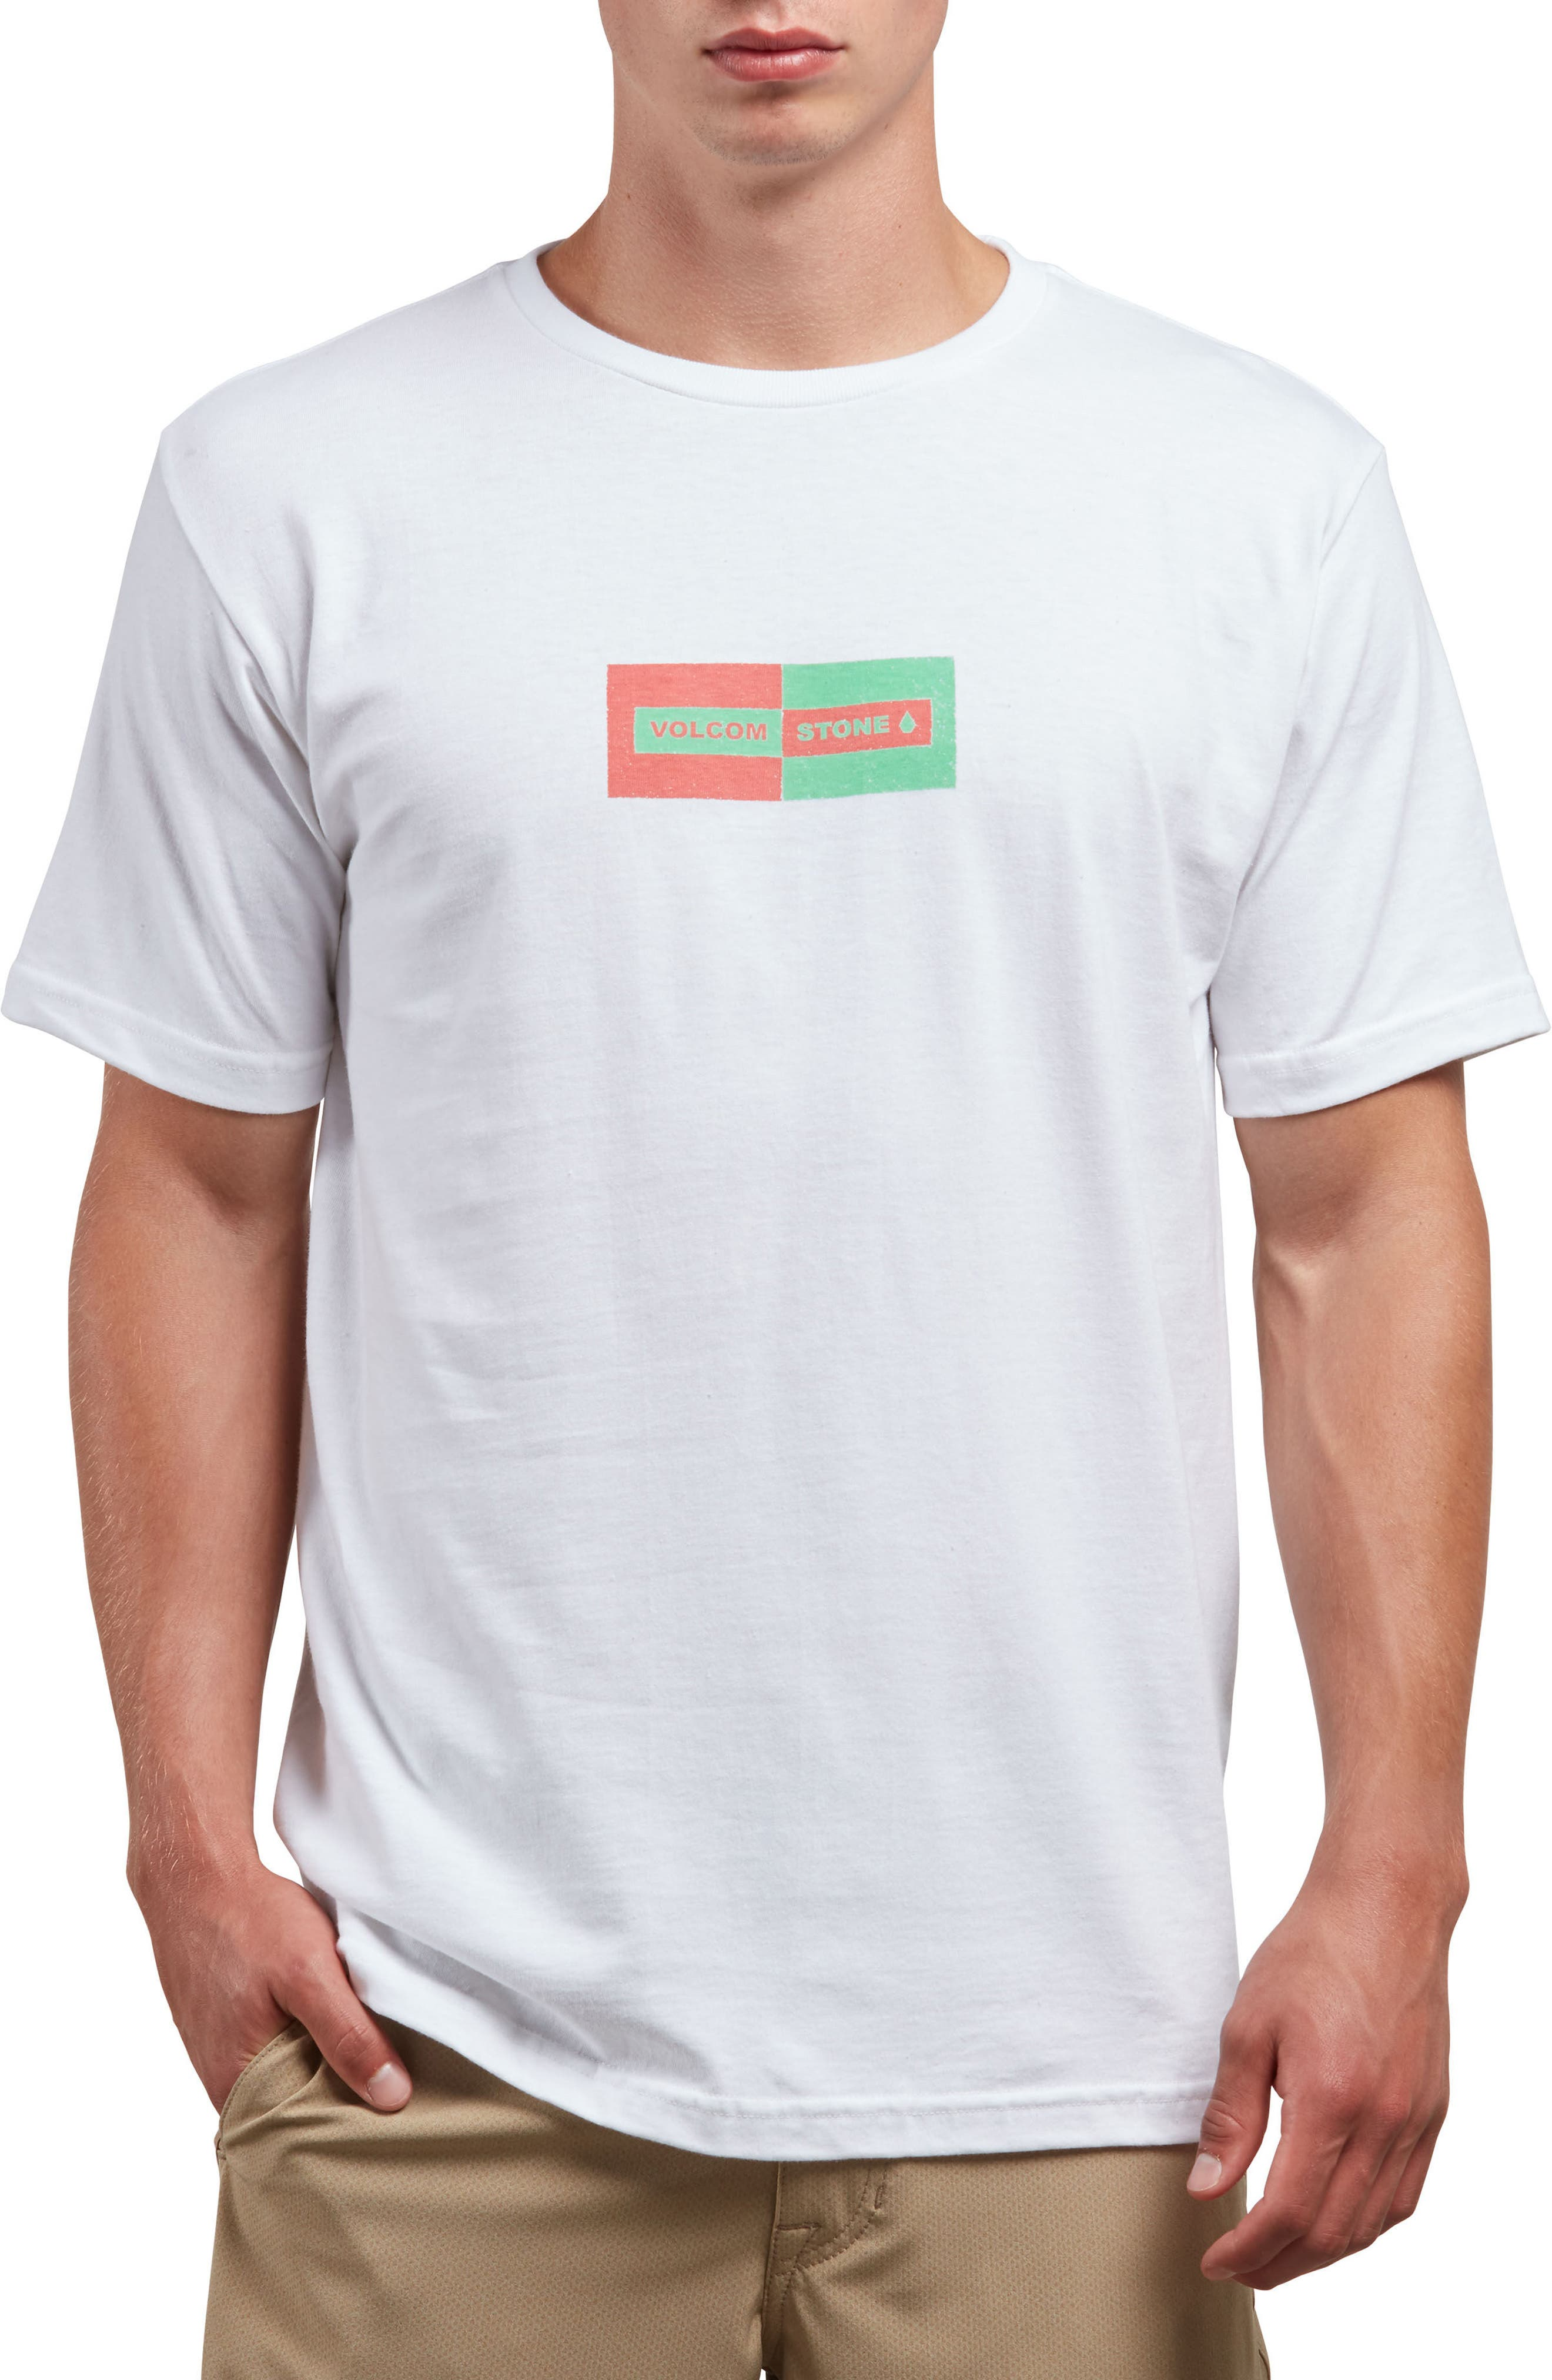 Same Difference T-Shirt,                         Main,                         color, 100